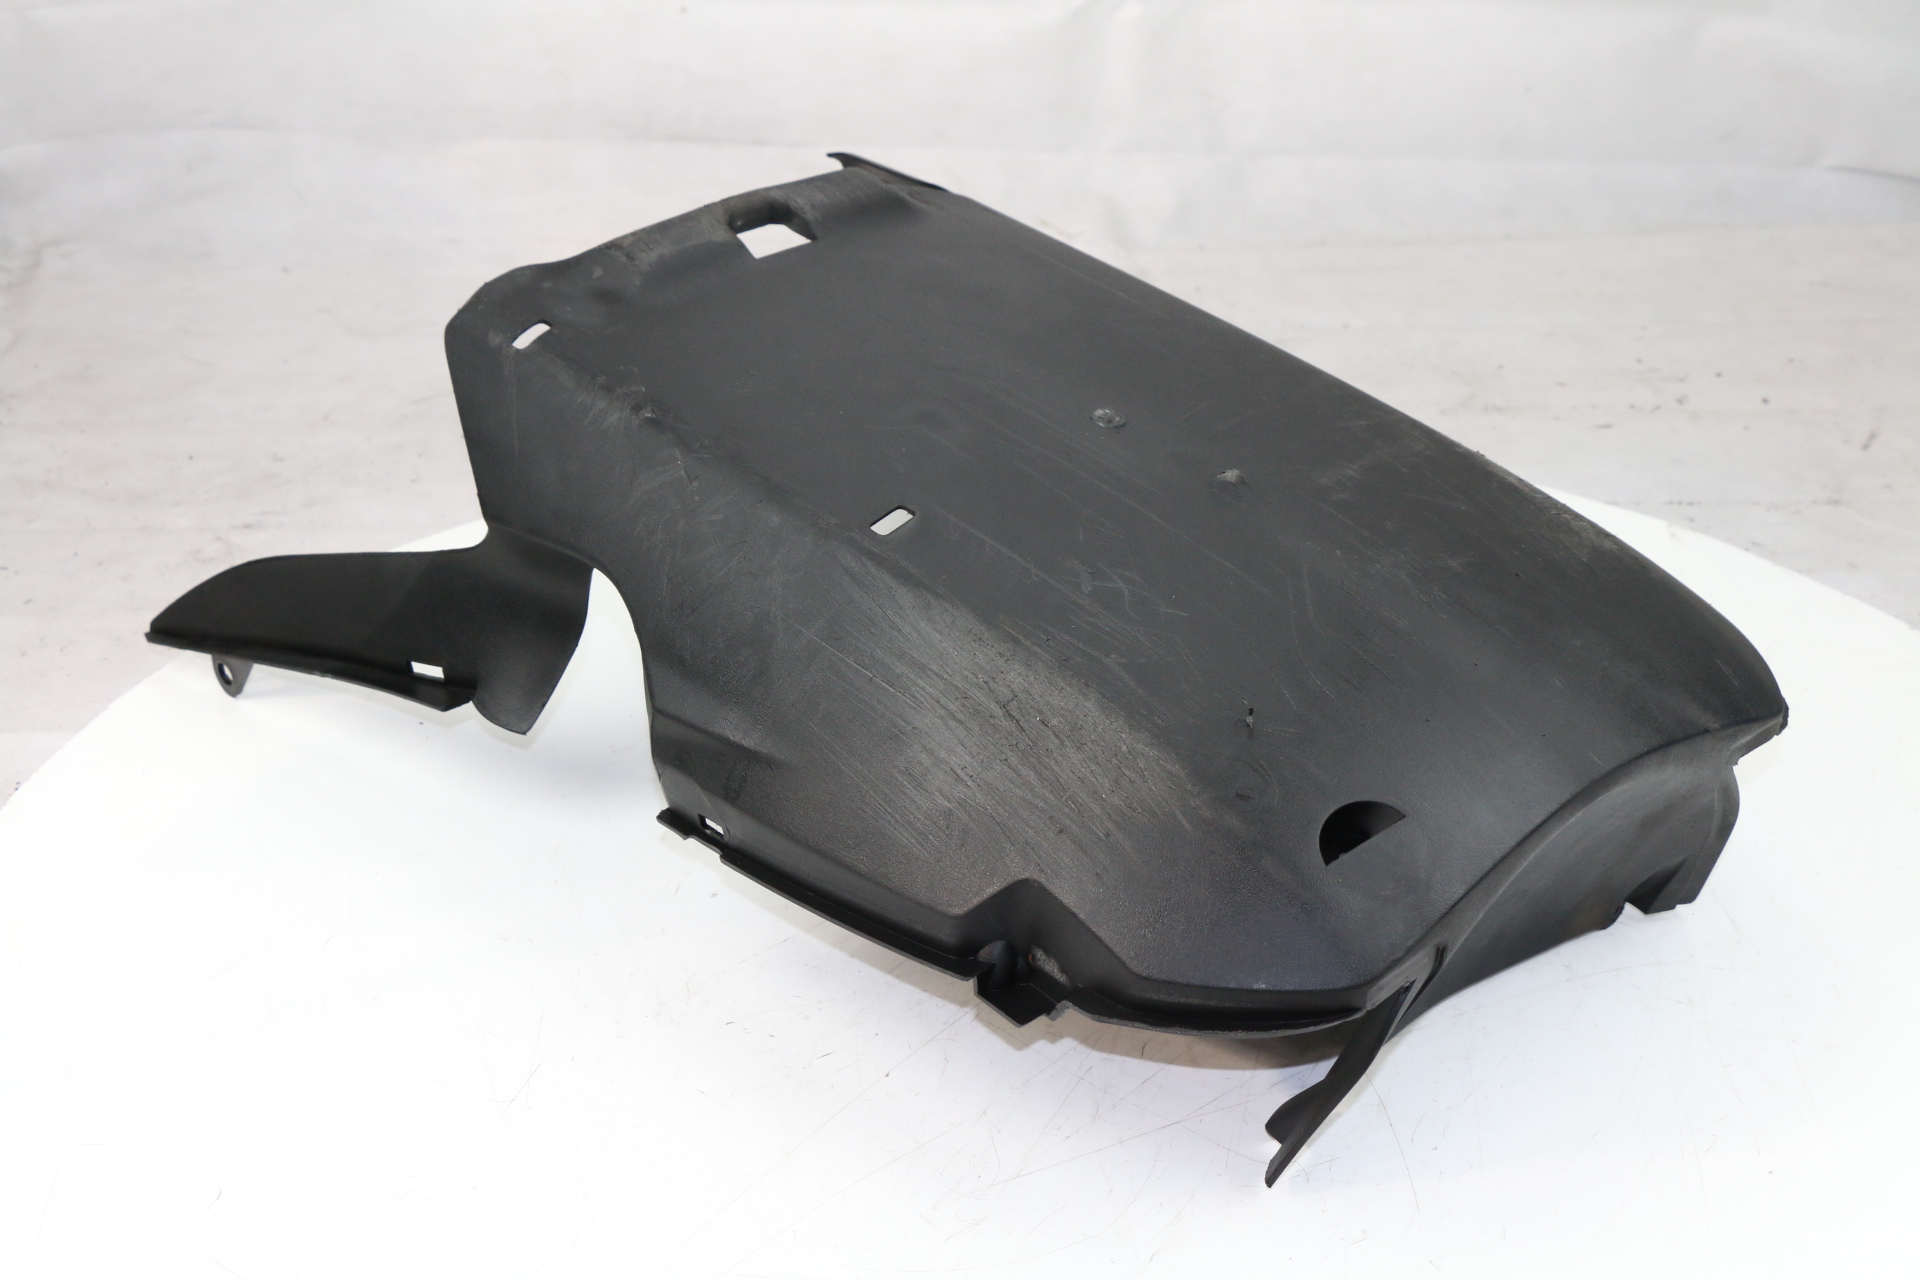 hight resolution of belly panel yamaha cygnus x 125 2004 2007 ebay yamaha 125 cygnus x yamaha cygnus mudguard